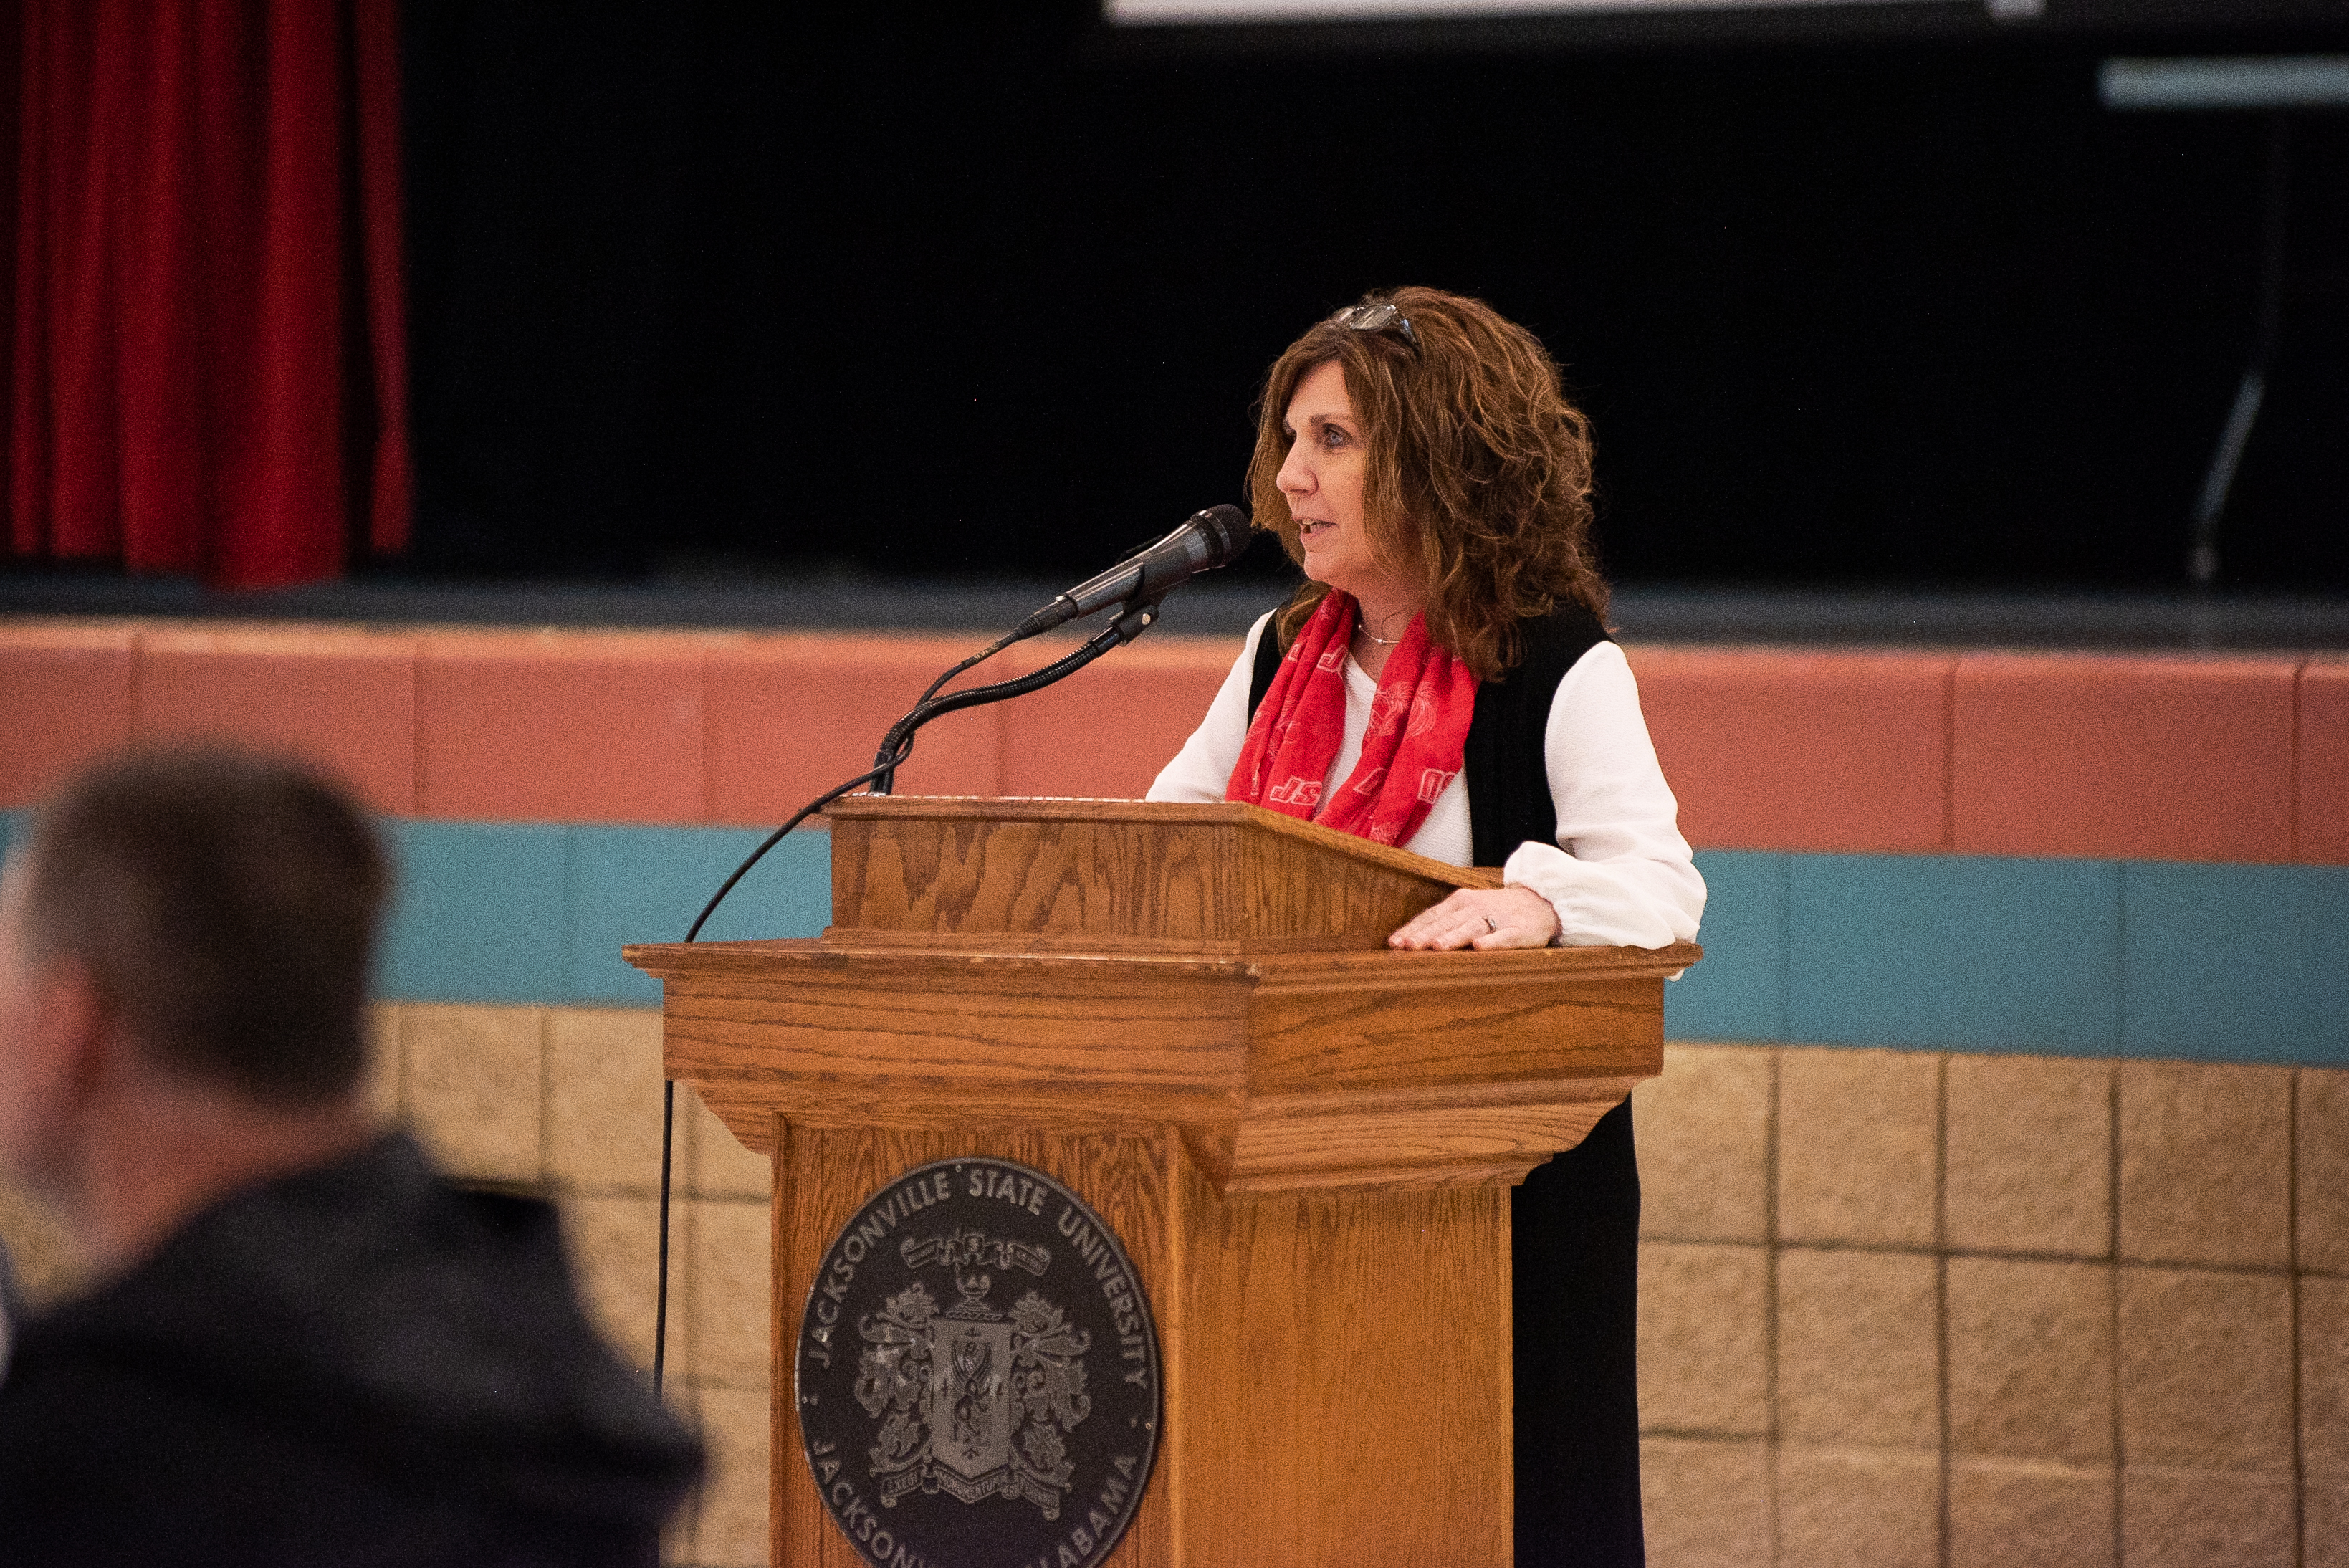 Provost Christie Shelton, pictured, speaks at the Faculty Appreciation Tailgate held on October 26, 2019. (Abigail Read/JSU)